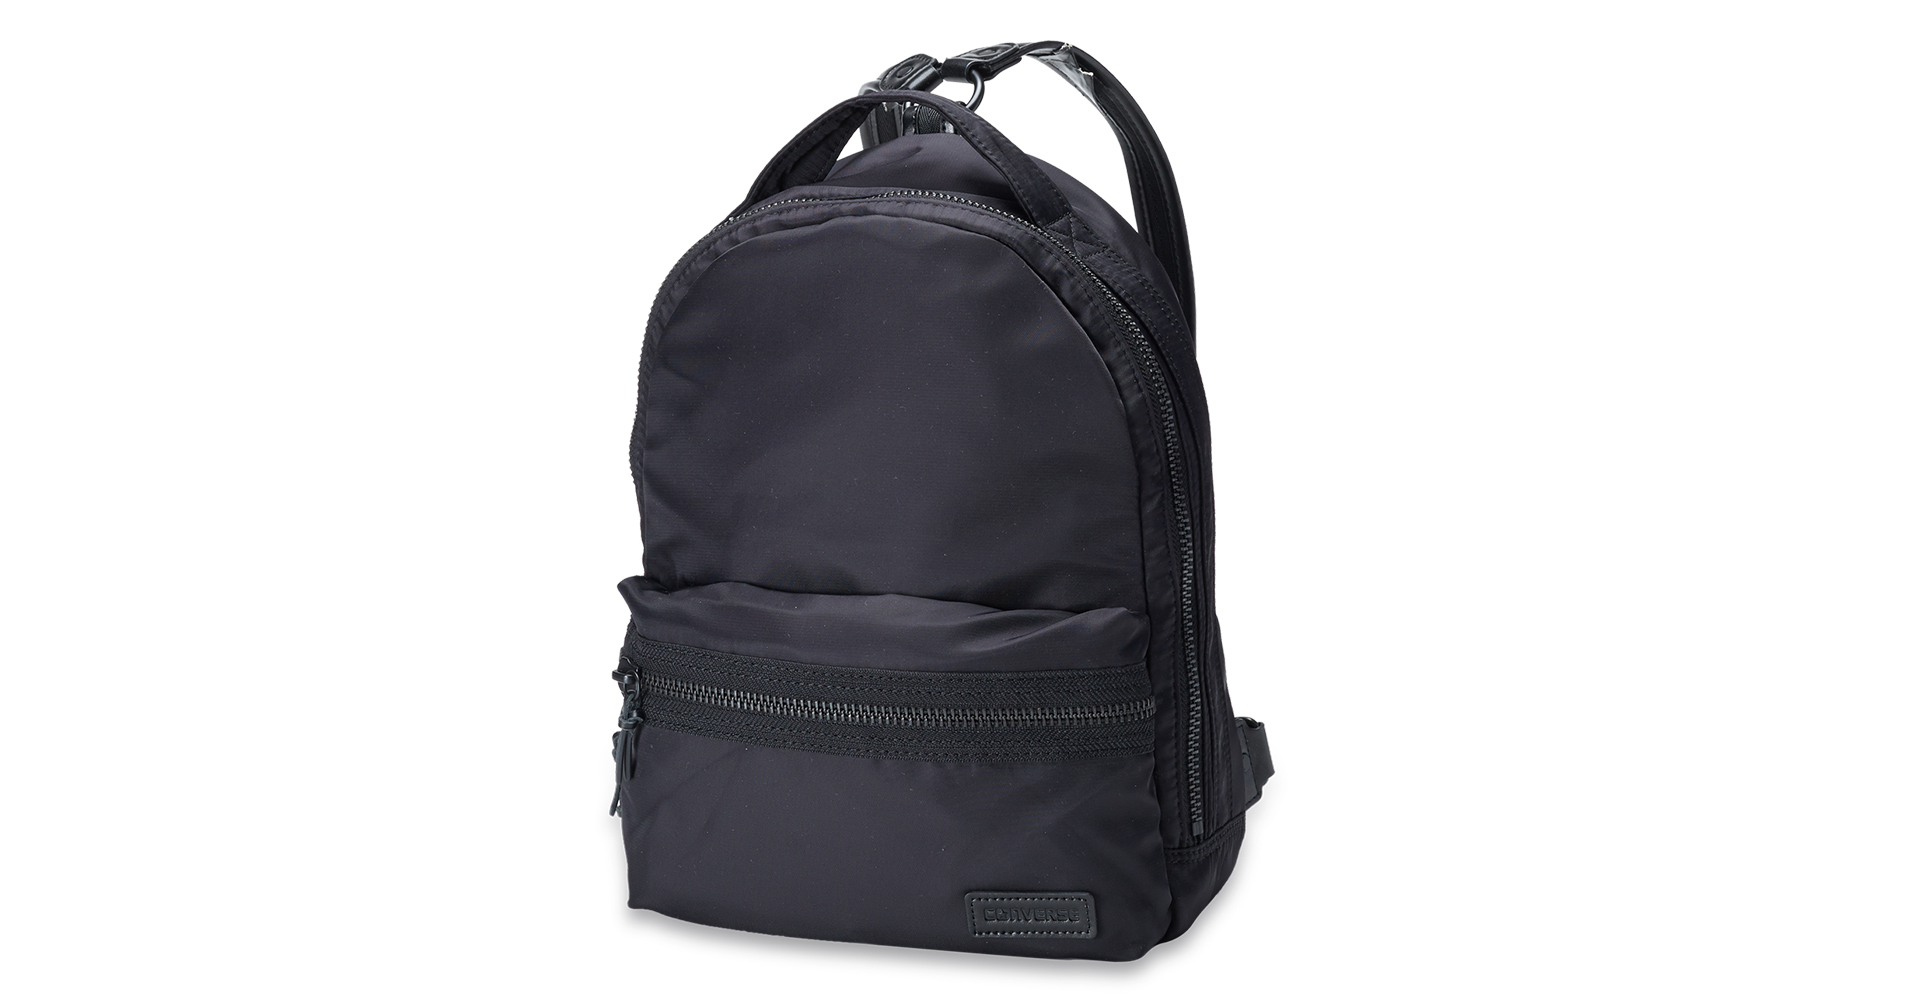 99d38bf5 converse all star school bags Sale,up to 43% Discounts